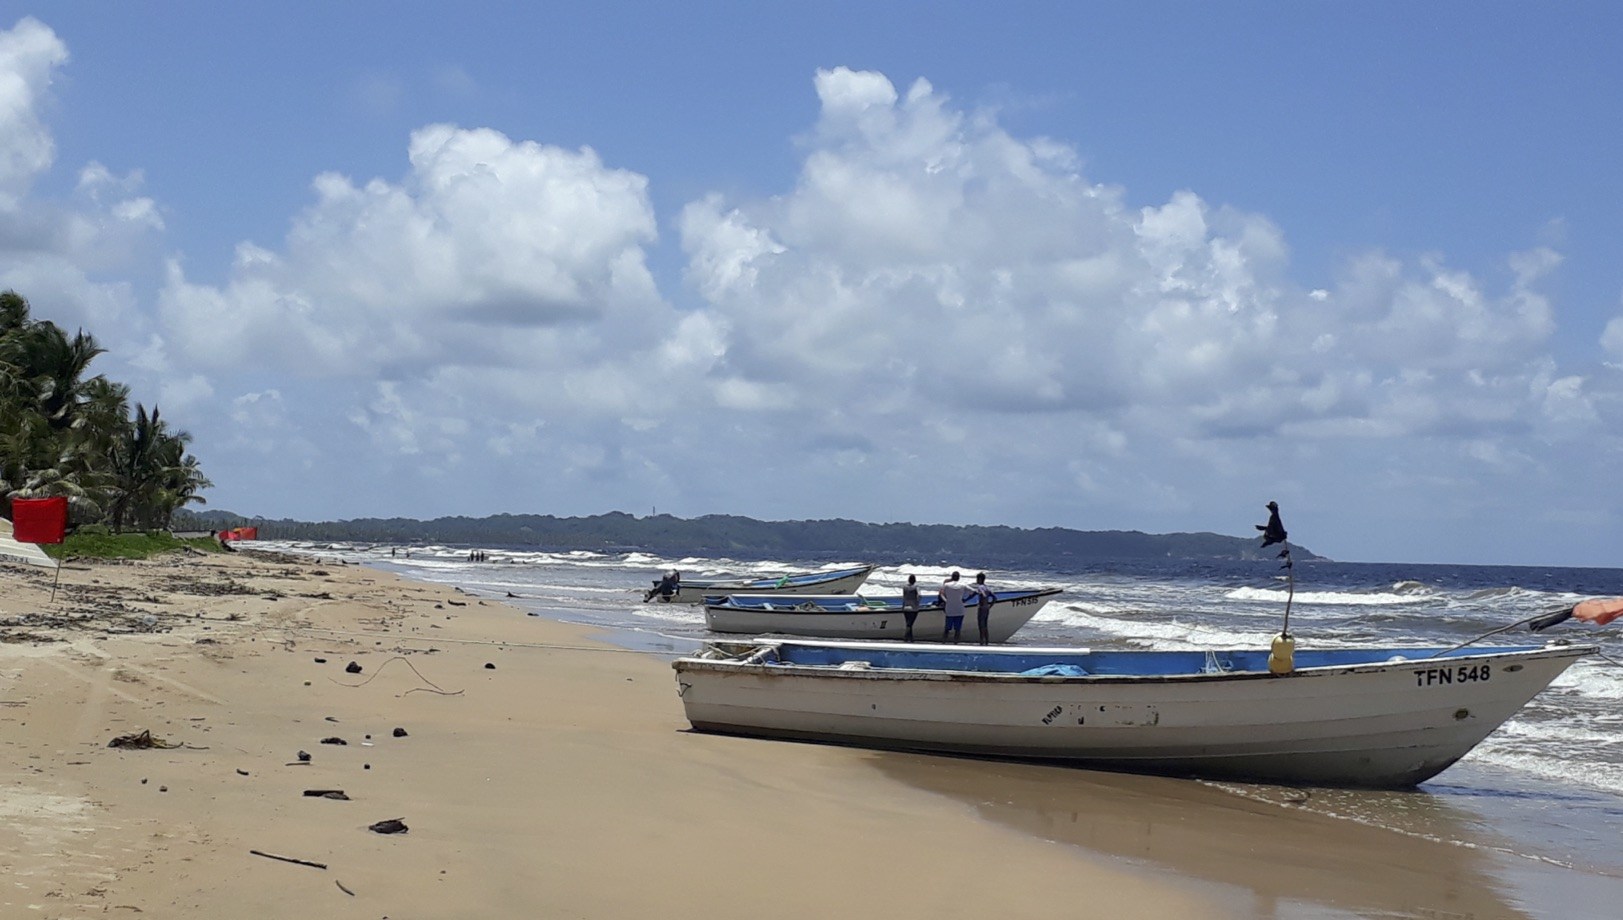 3 Fishing Boats on the beach